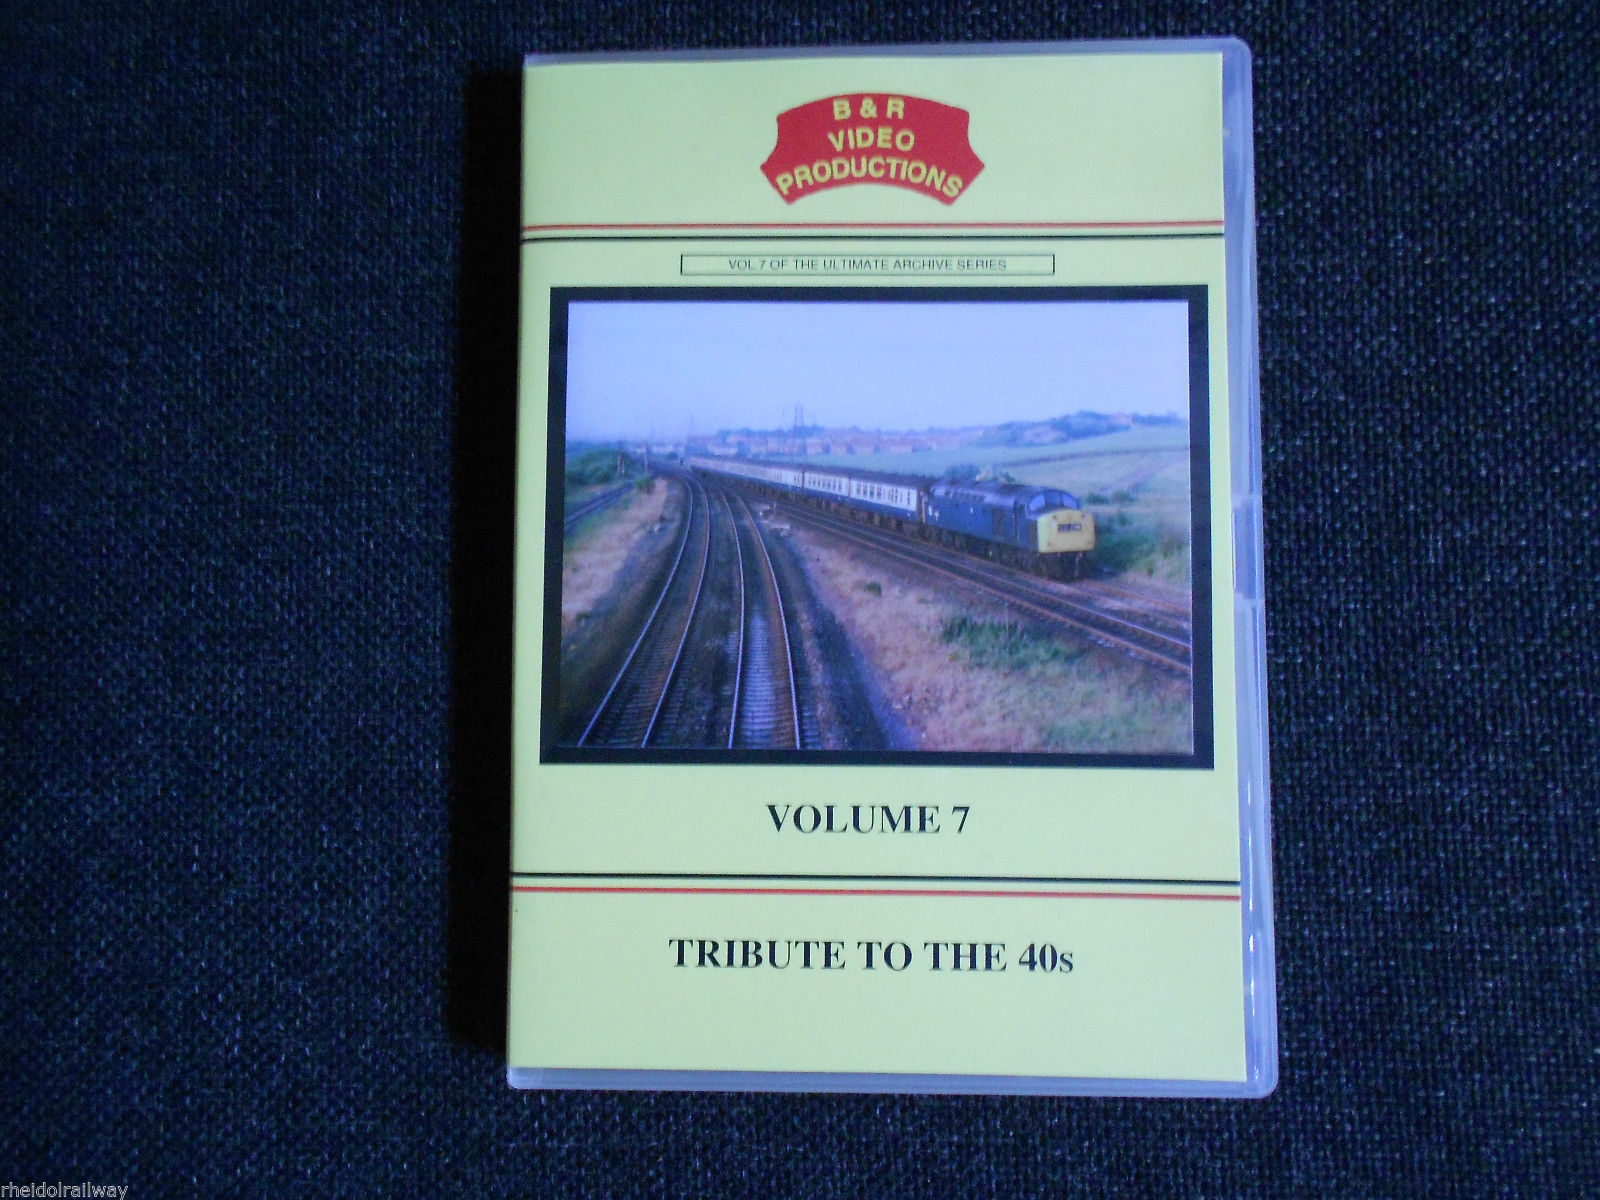 English Electric, Type 4, Trubute To The 40s, B & R Volume 7 DVD